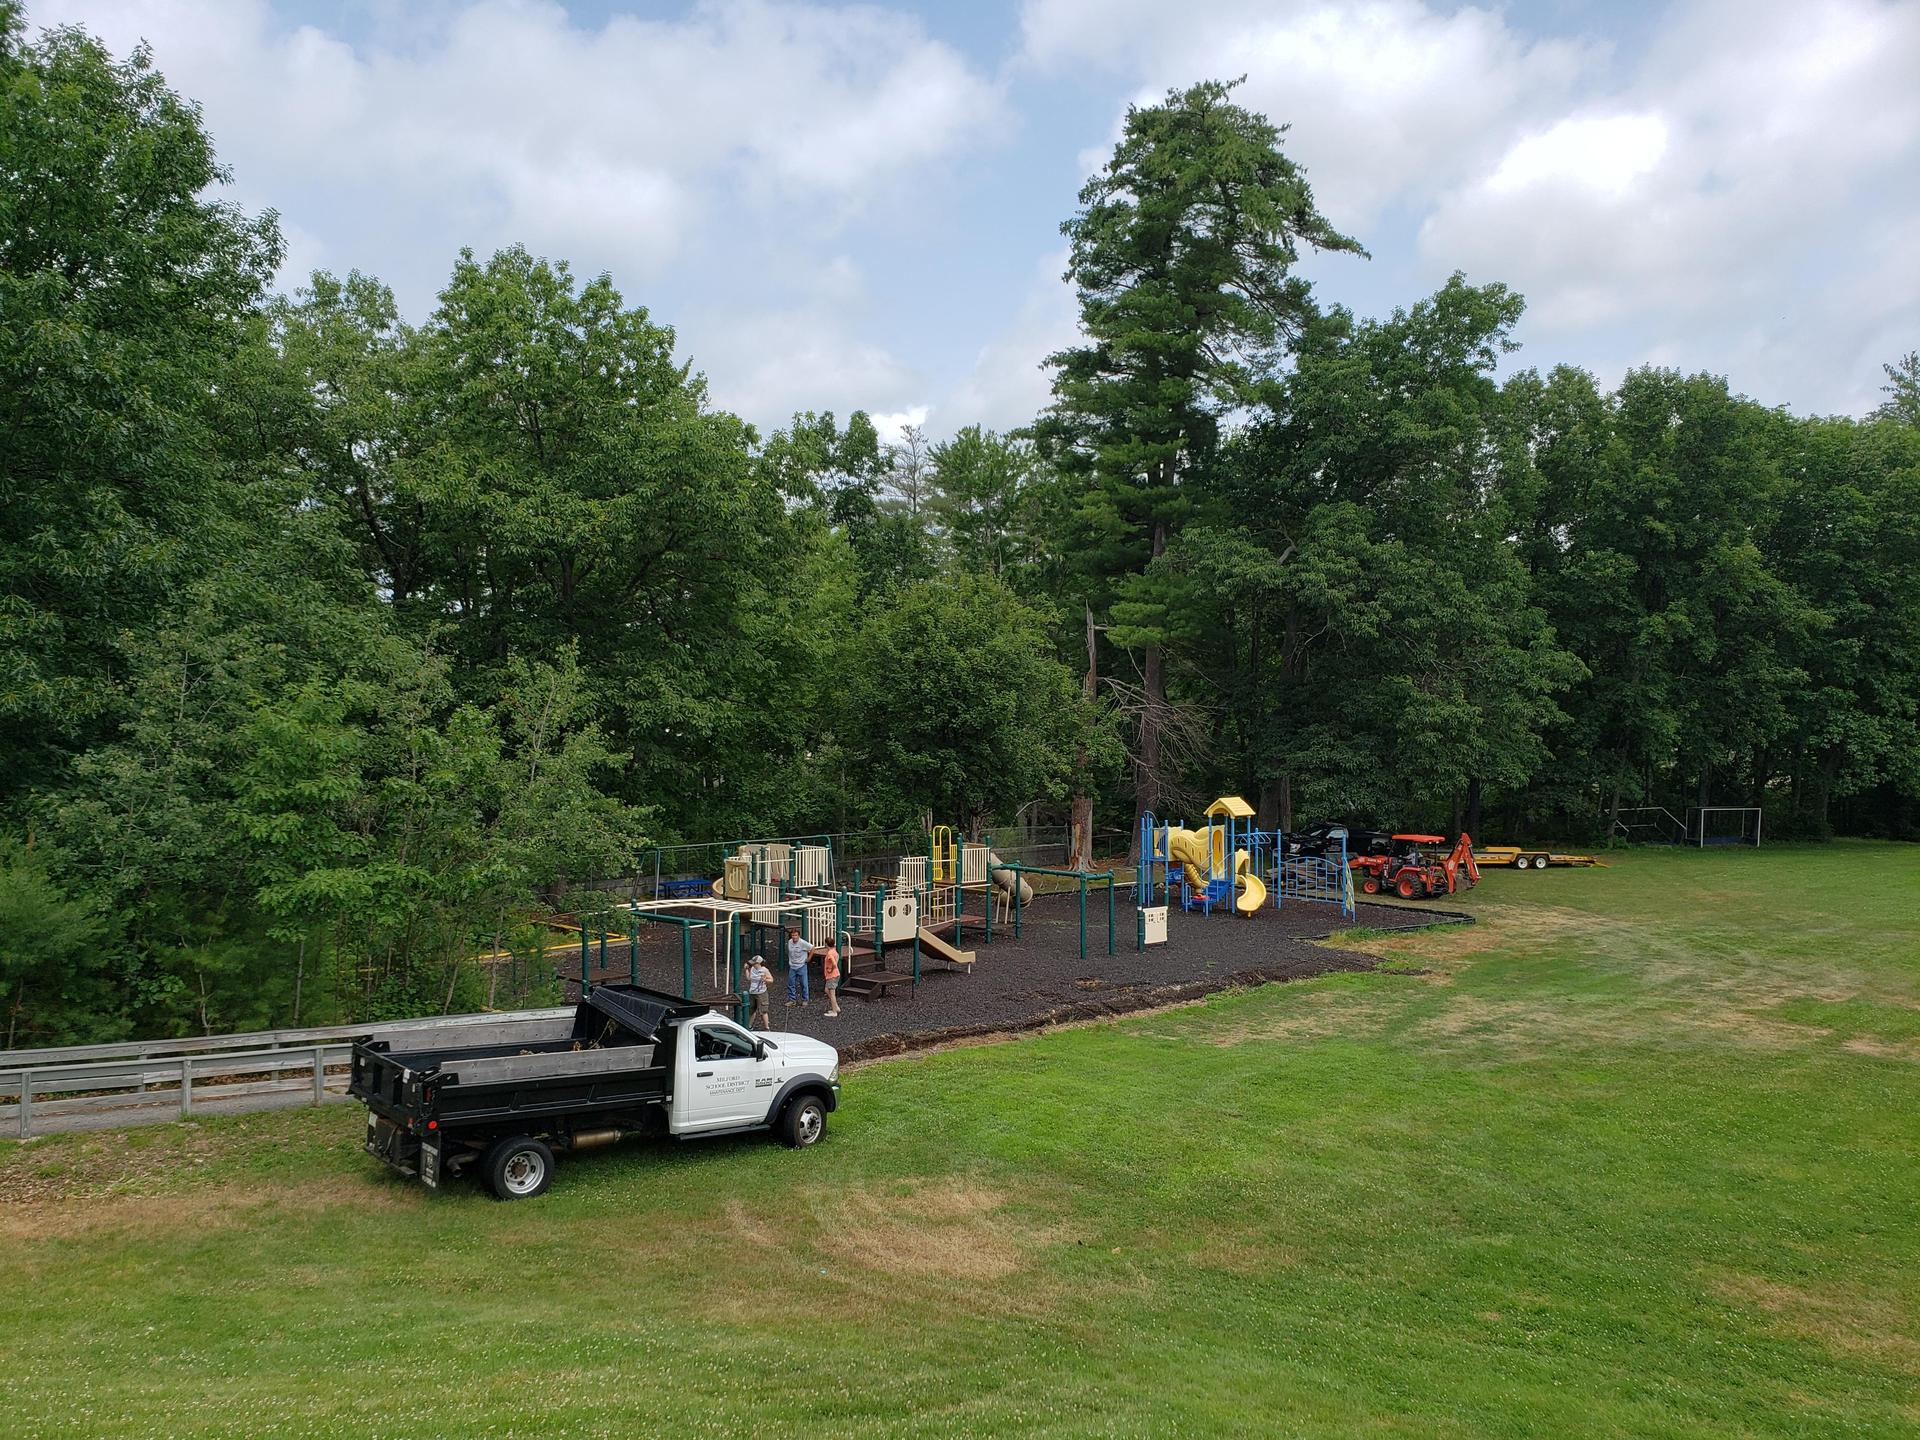 JM playground removal